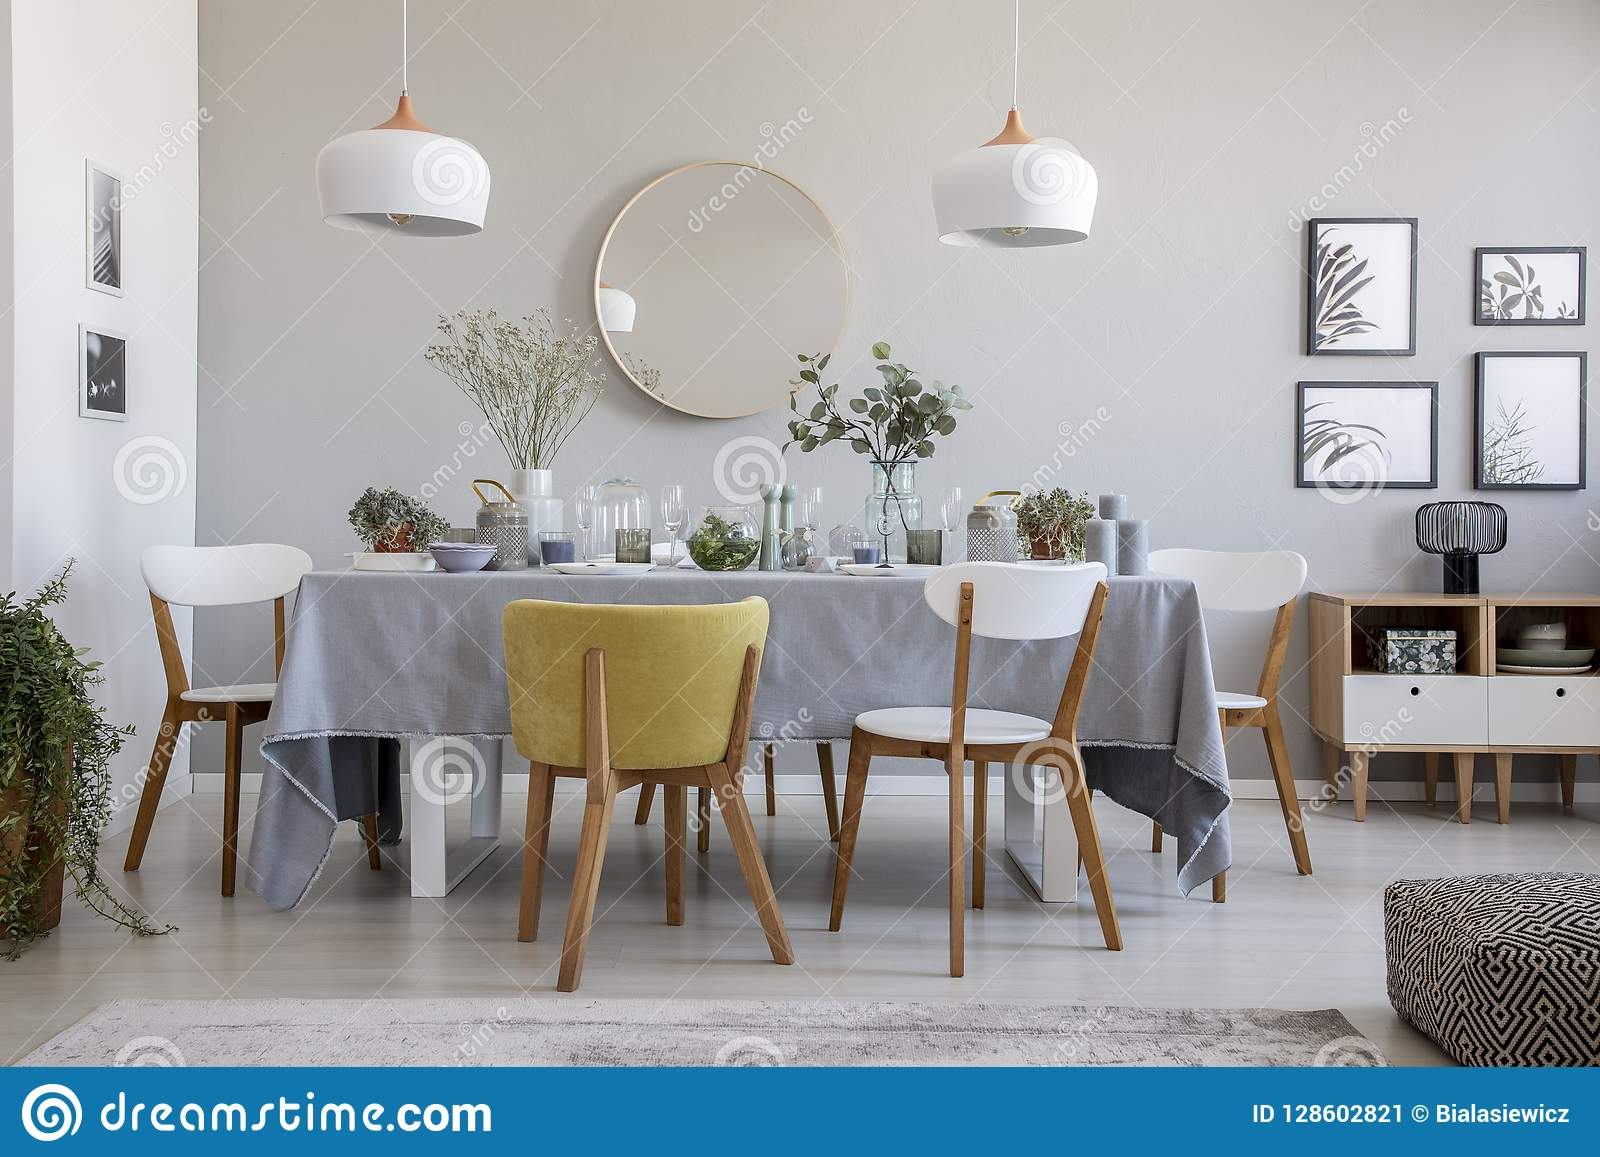 Elegant Dining Room Interior With A Laid Table Chairs Mirror On A Wall And Lamps Stock Image Image Of Chairs Elegant 128602821